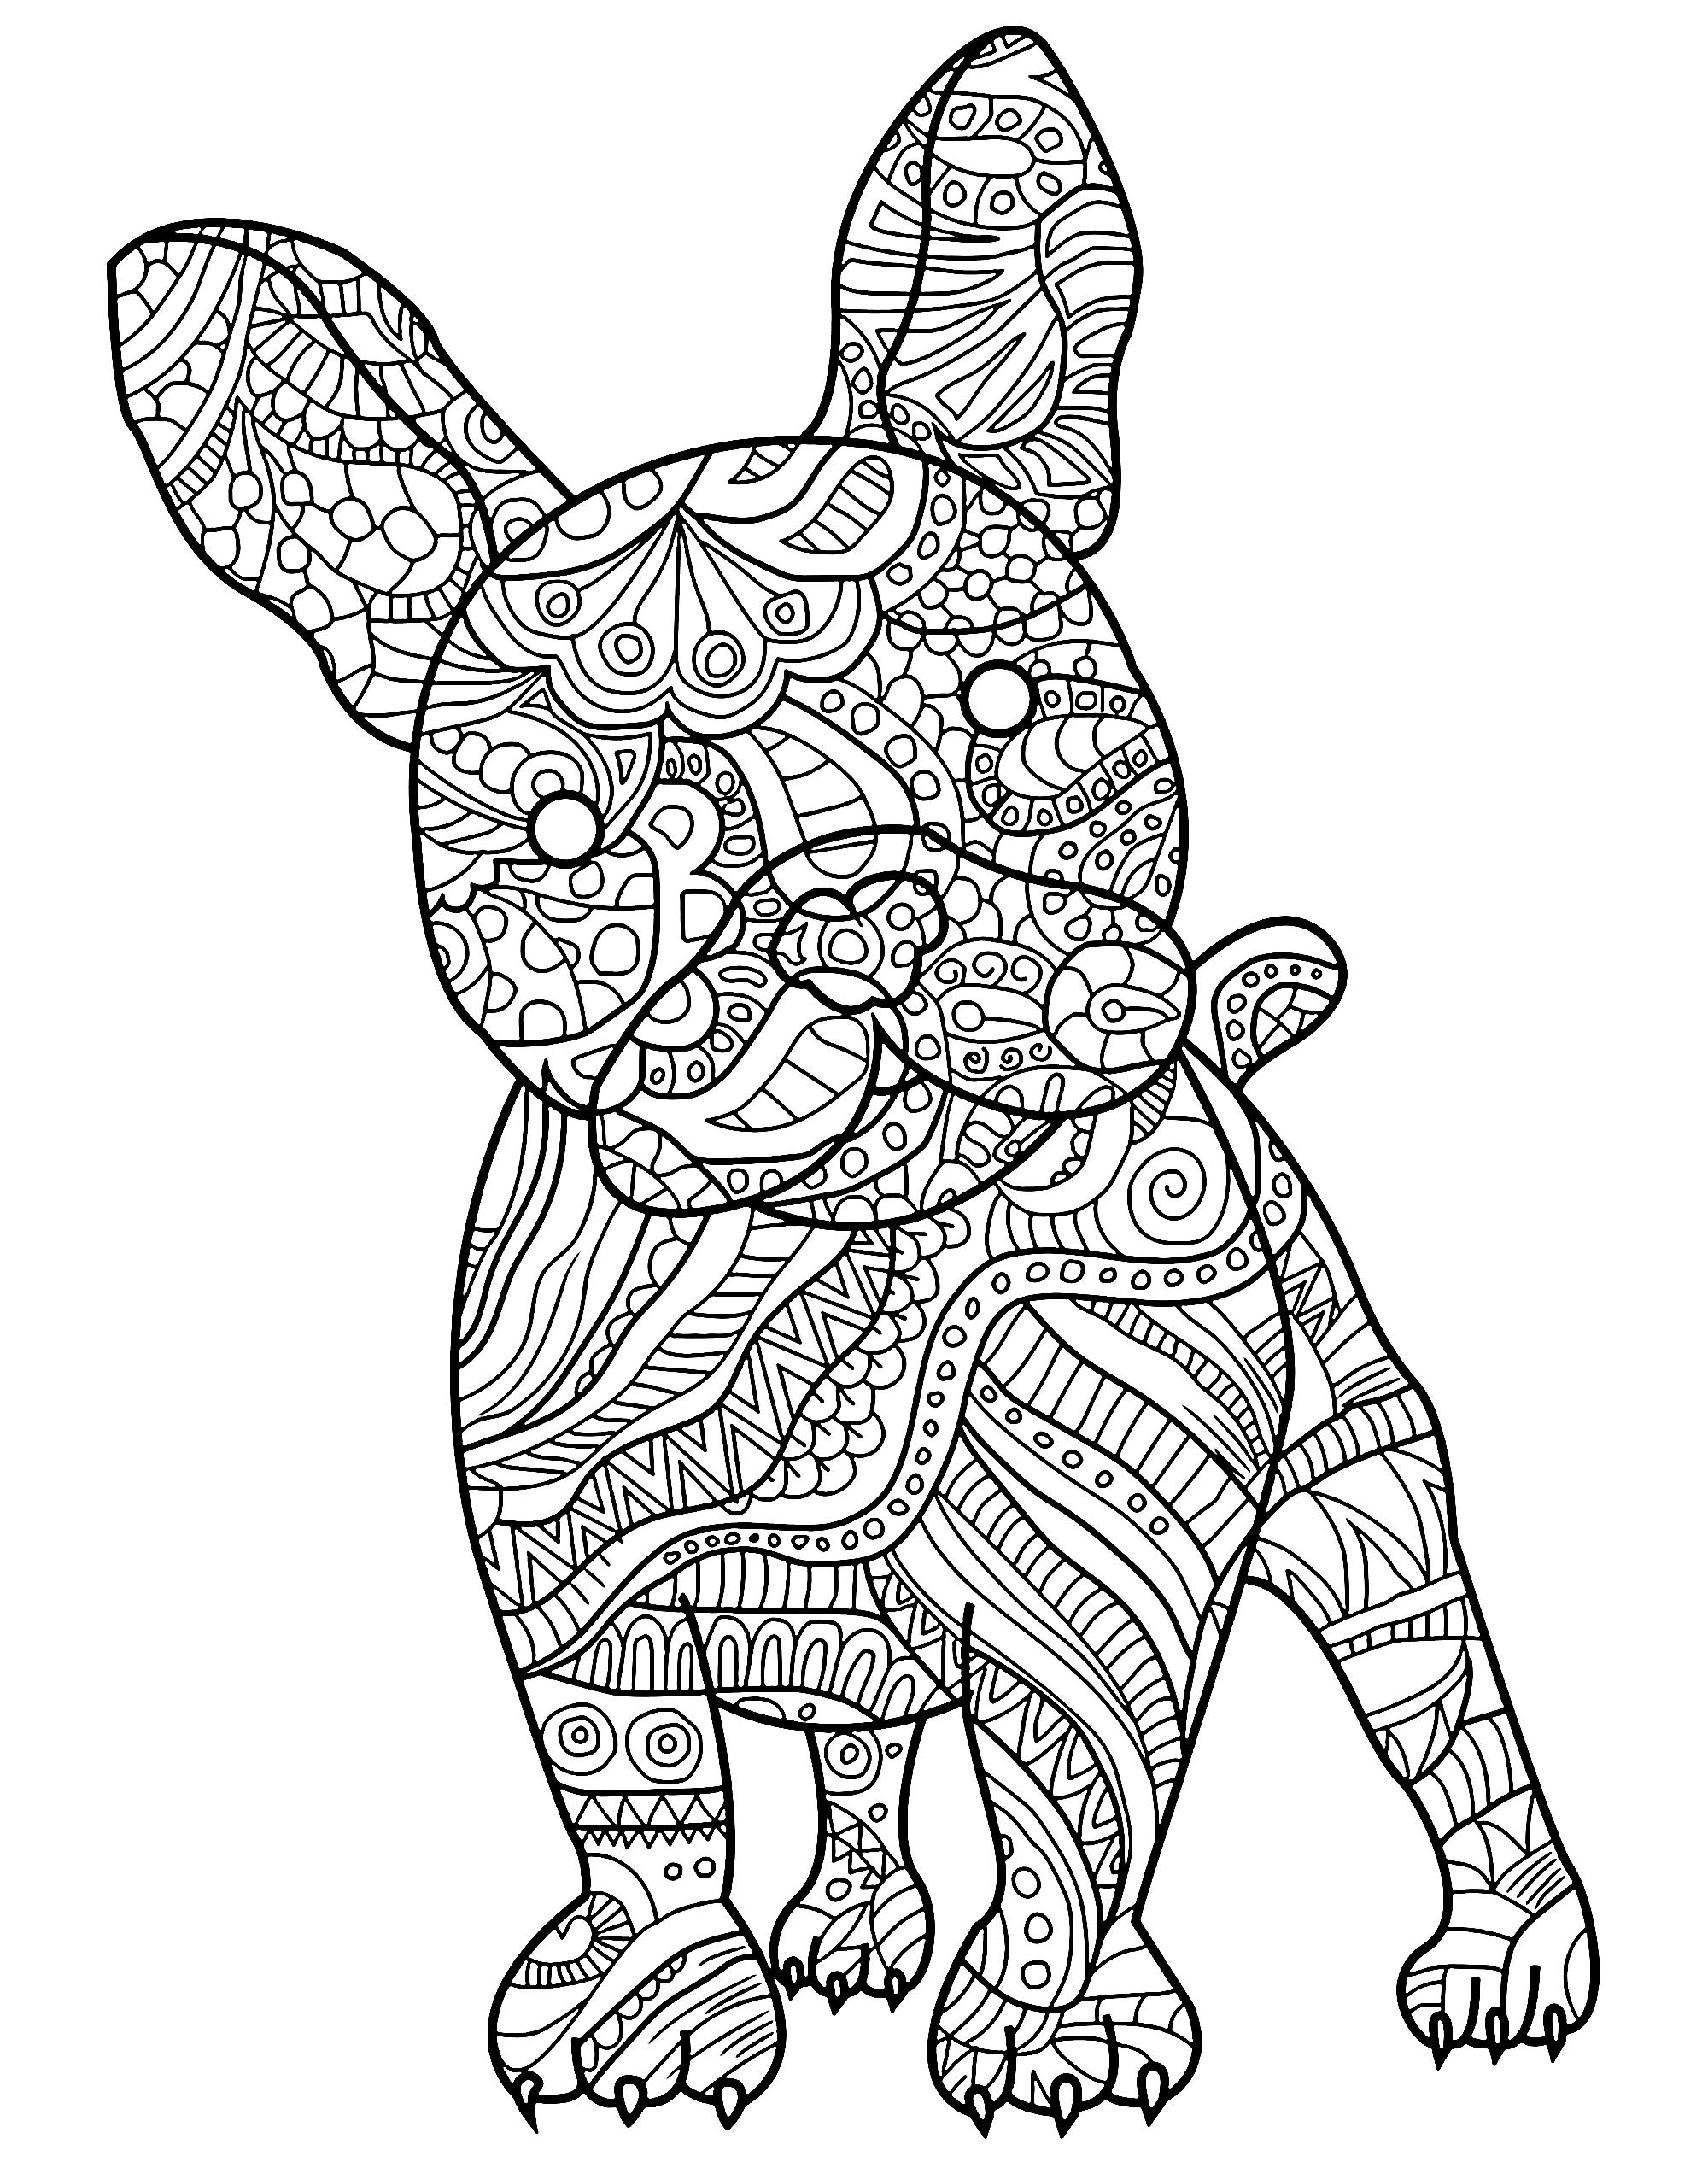 dog coloring pictures printable free printable dog coloring pages for kids dog printable pictures coloring